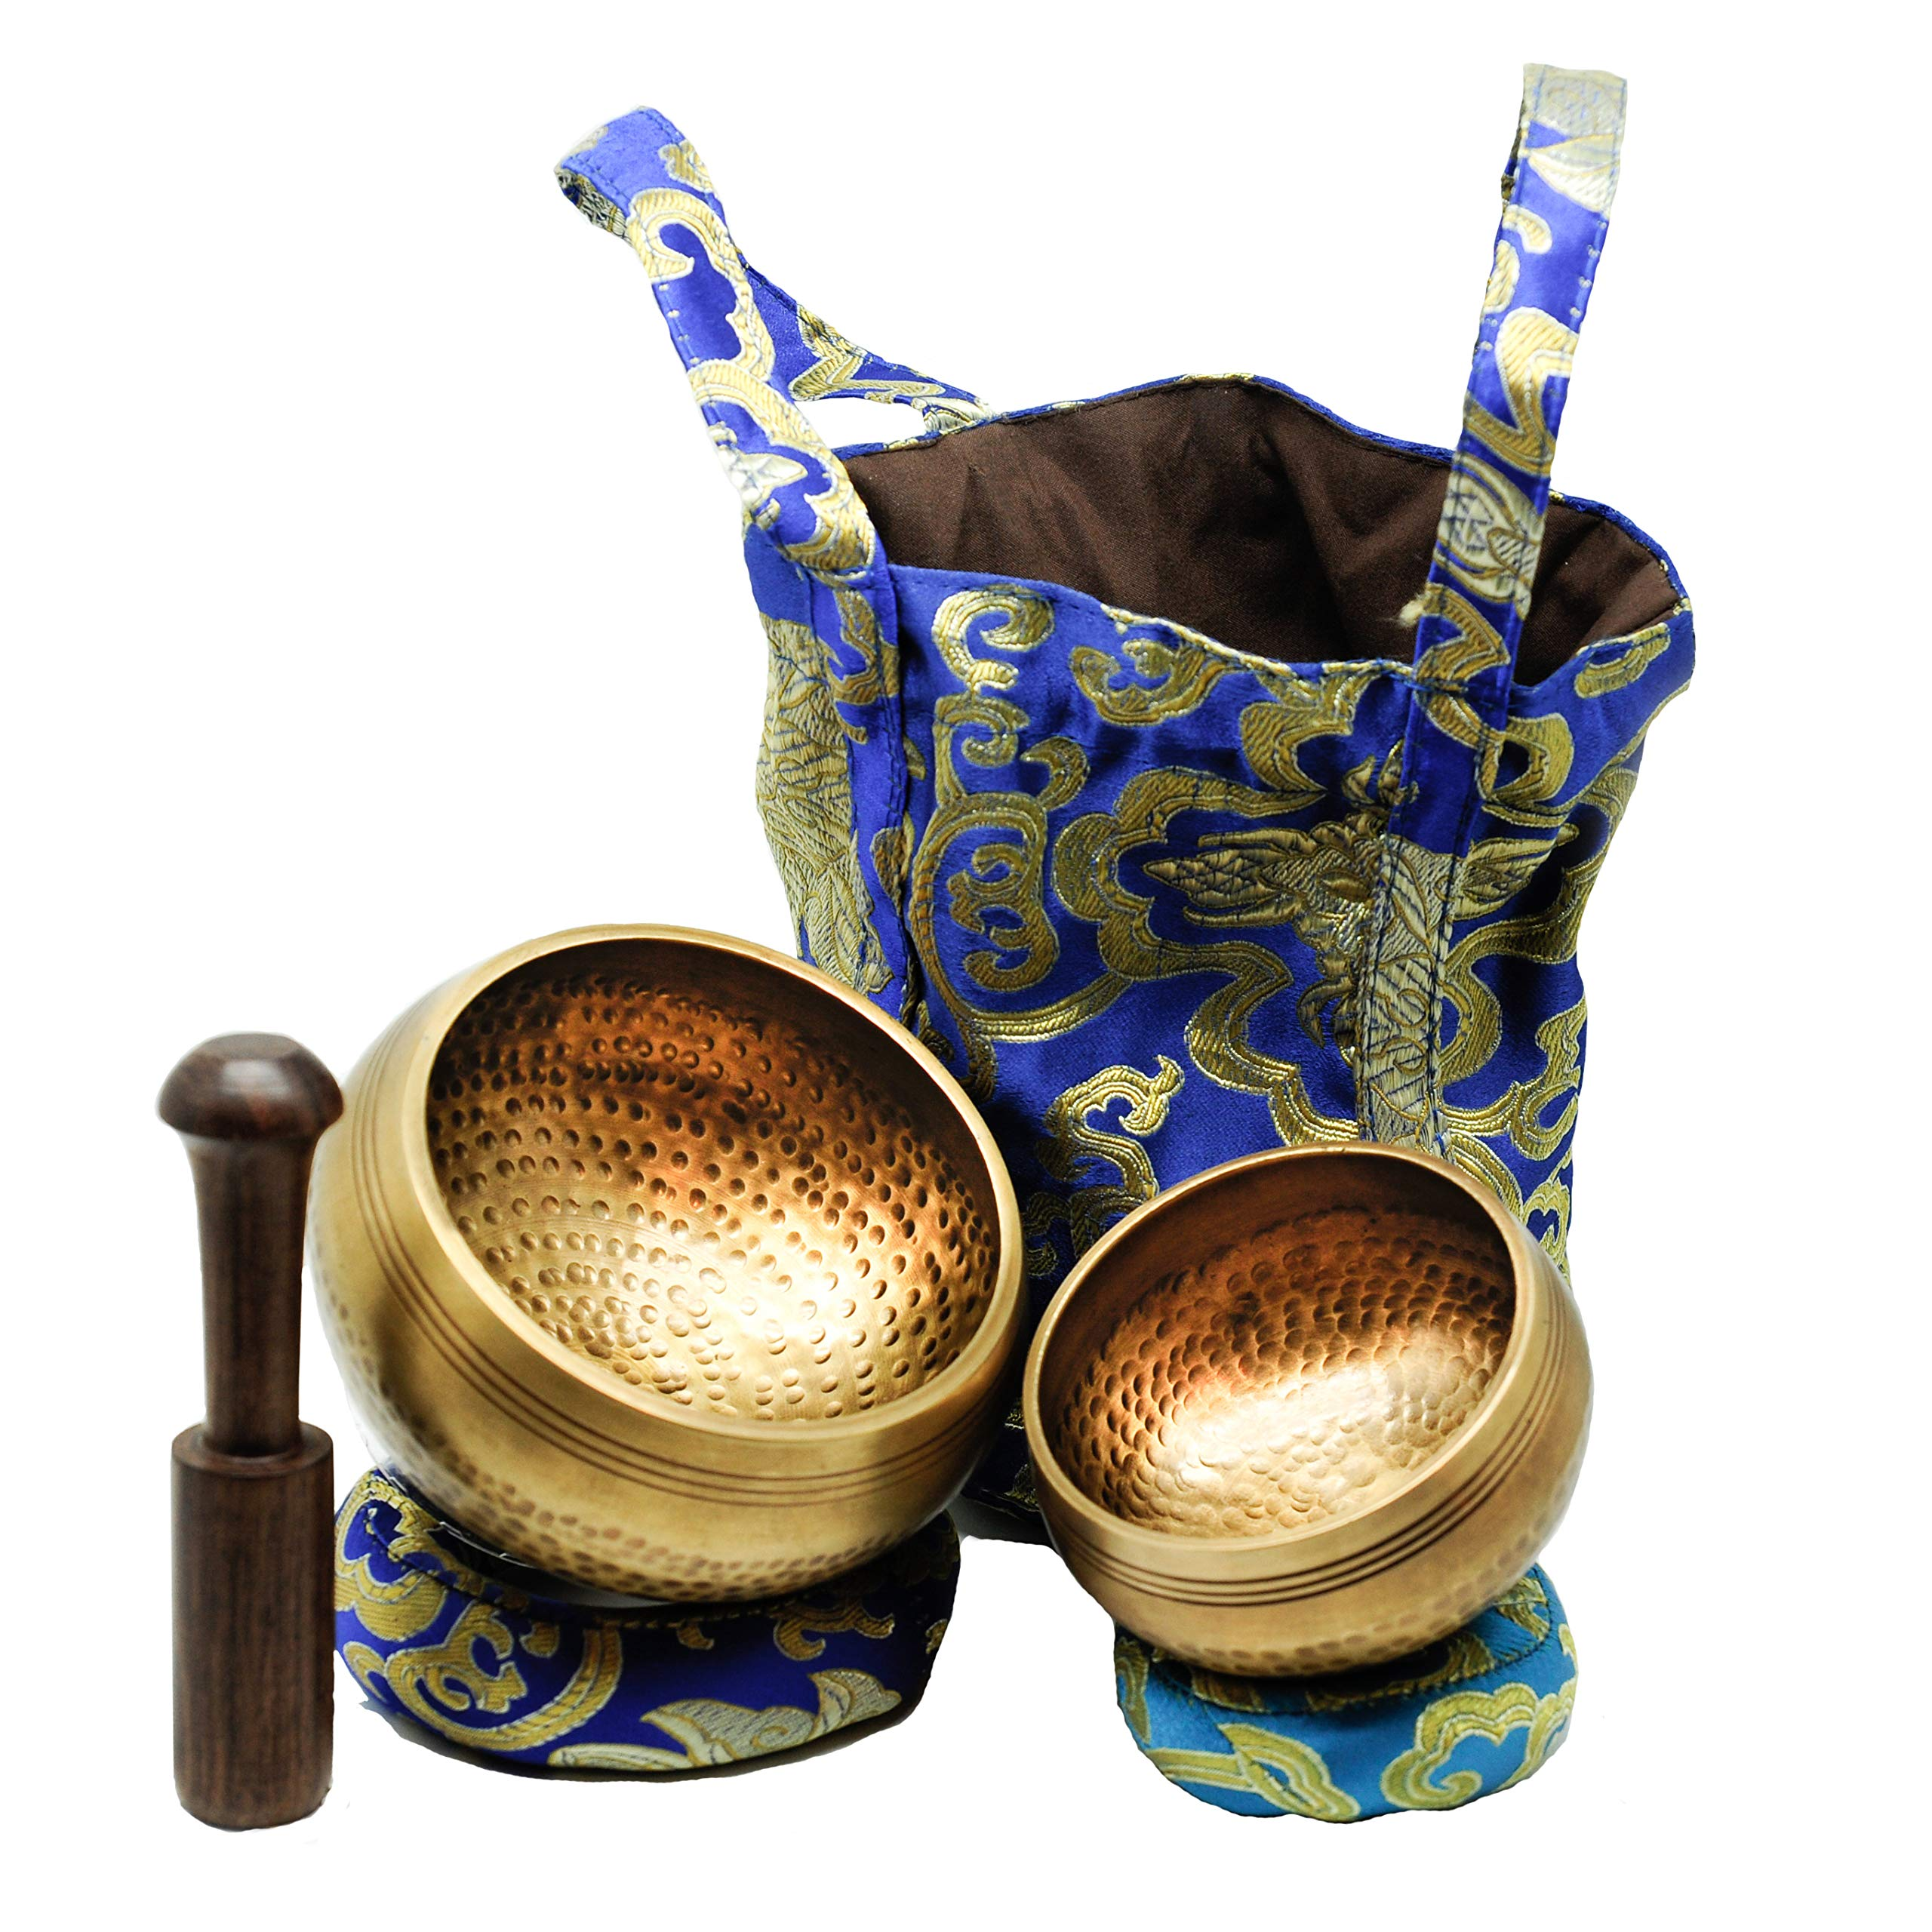 Tibetan Singing Bowls Set. 2 bowls: 4 inches & 3.15 inch, Mallet, Ring Cushions and Nepal Cloth Bag. Great for Meditation, Yoga, Relaxation, and Healing. Increase mindfulness. Deep Sound. by Cadushki